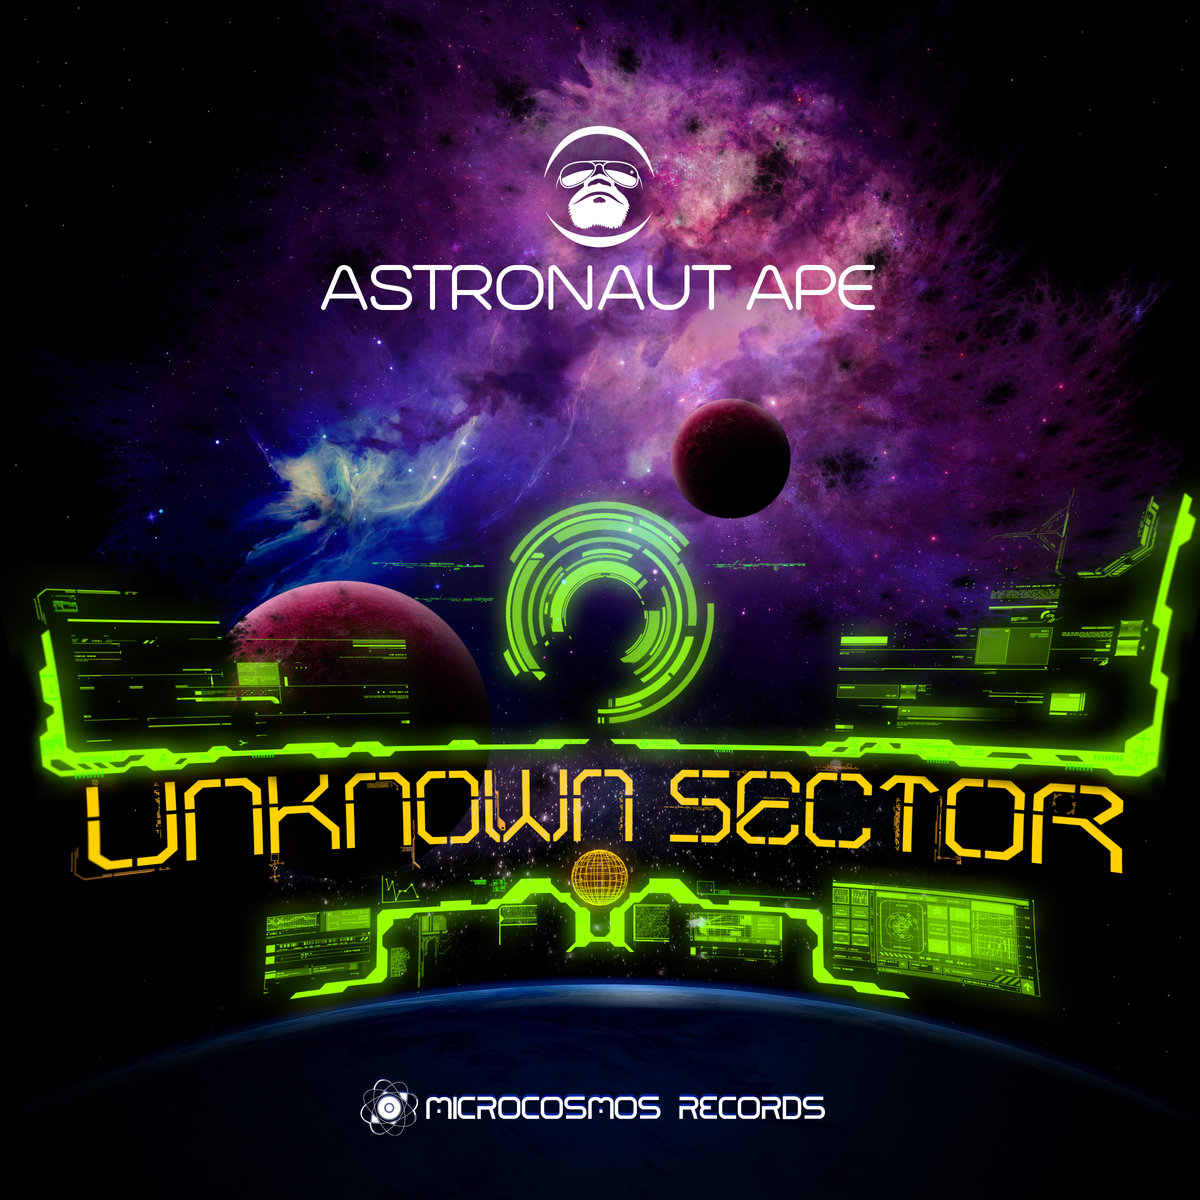 Astronaut Ape - A Lonely Robot In A Control Room @ 'Unknown Sector' album (ambient, chill-out)